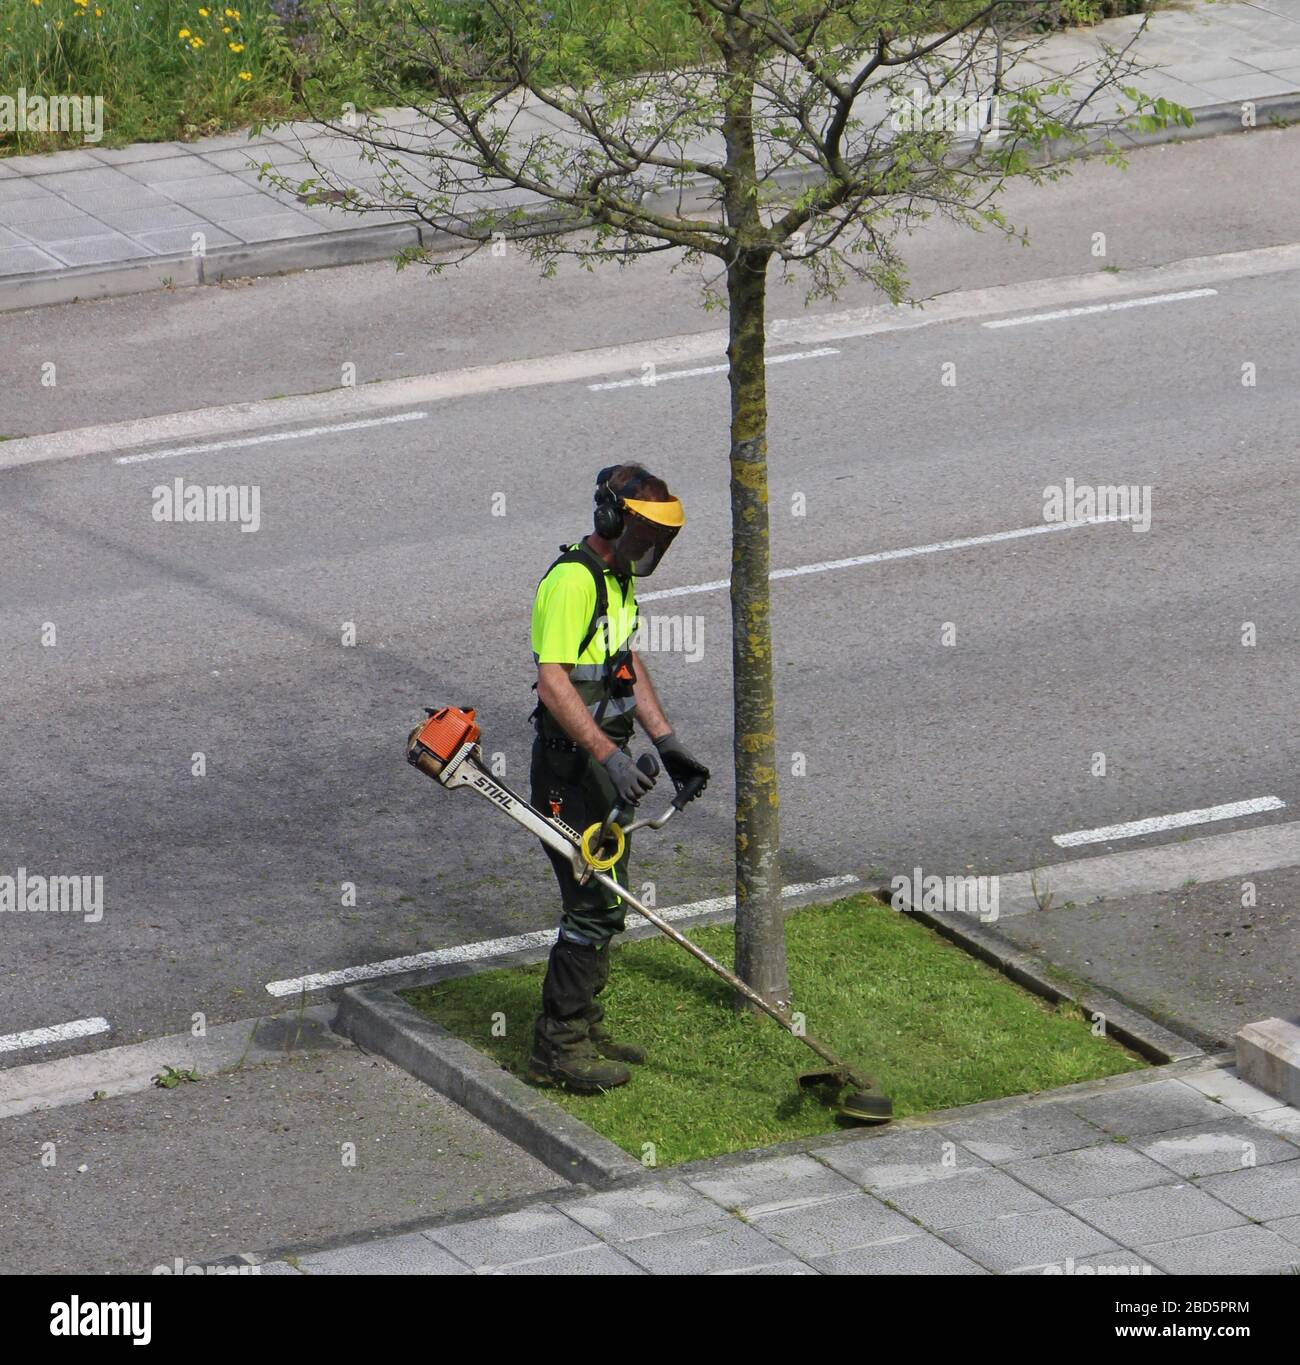 Santander Spain April 7 2020 View from lock down Municipal or council or local authority gardener strimming grass around a tree at the roadside Stock Photo